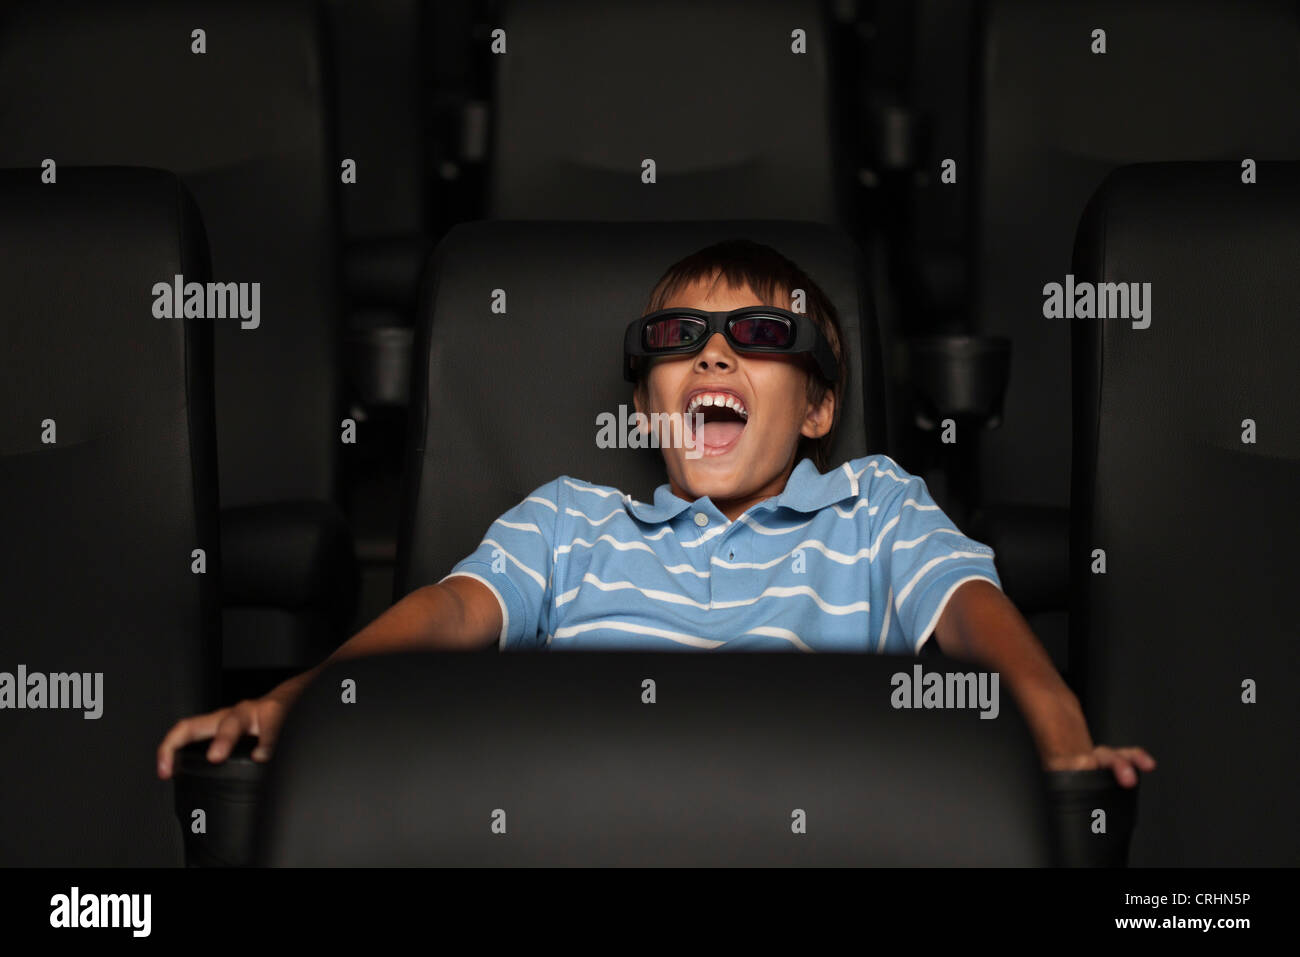 Boy enjoying 3-D movie in theater - Stock Image